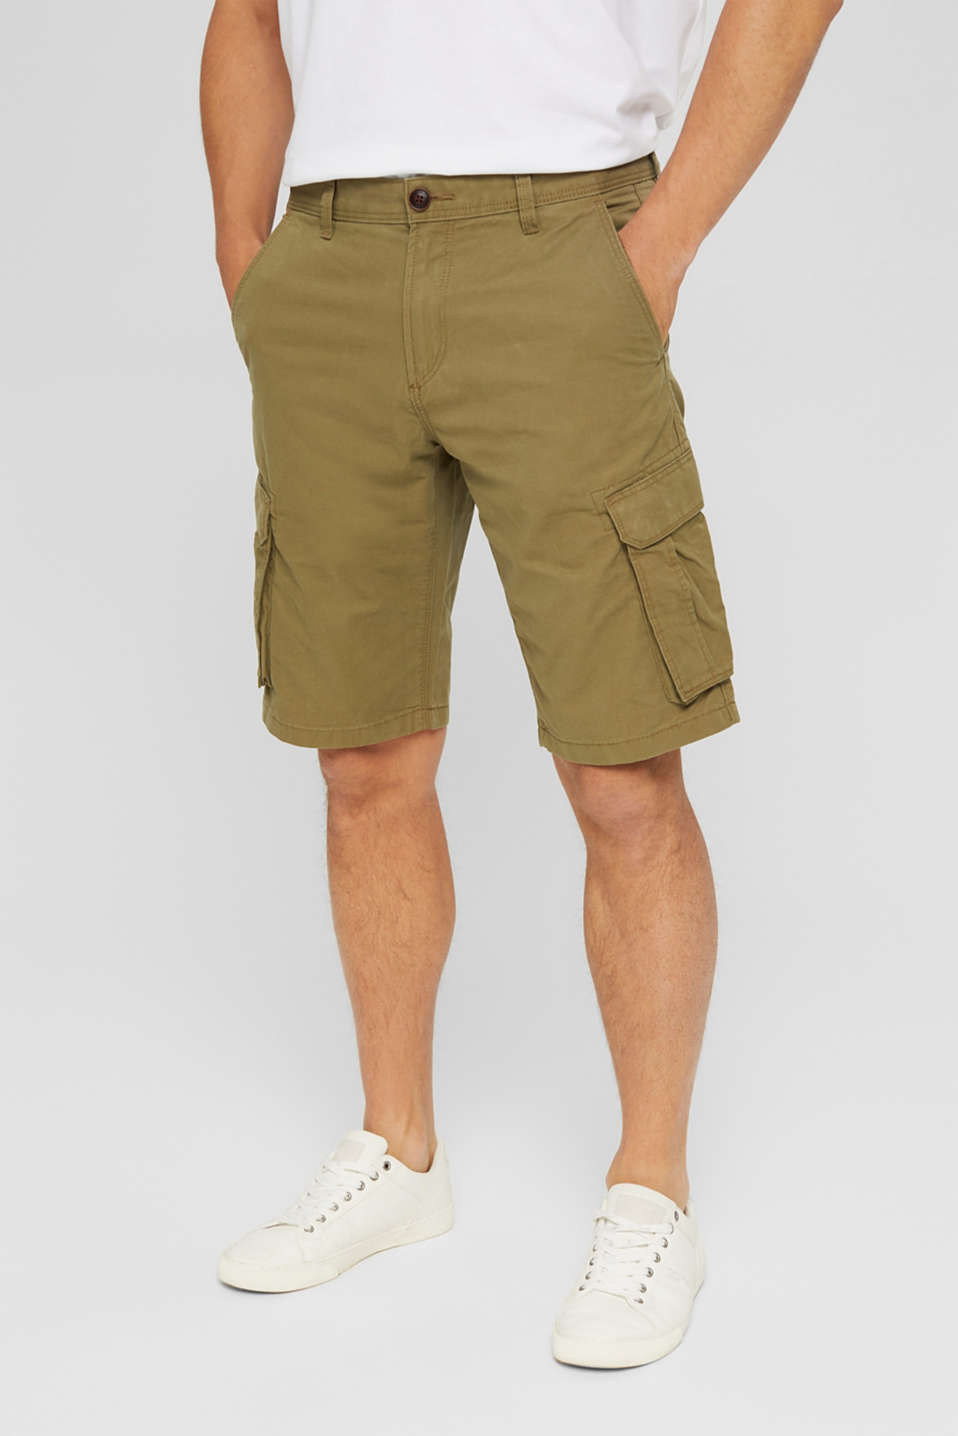 Shorts woven Relaxed fit, OLIVE, detail image number 0